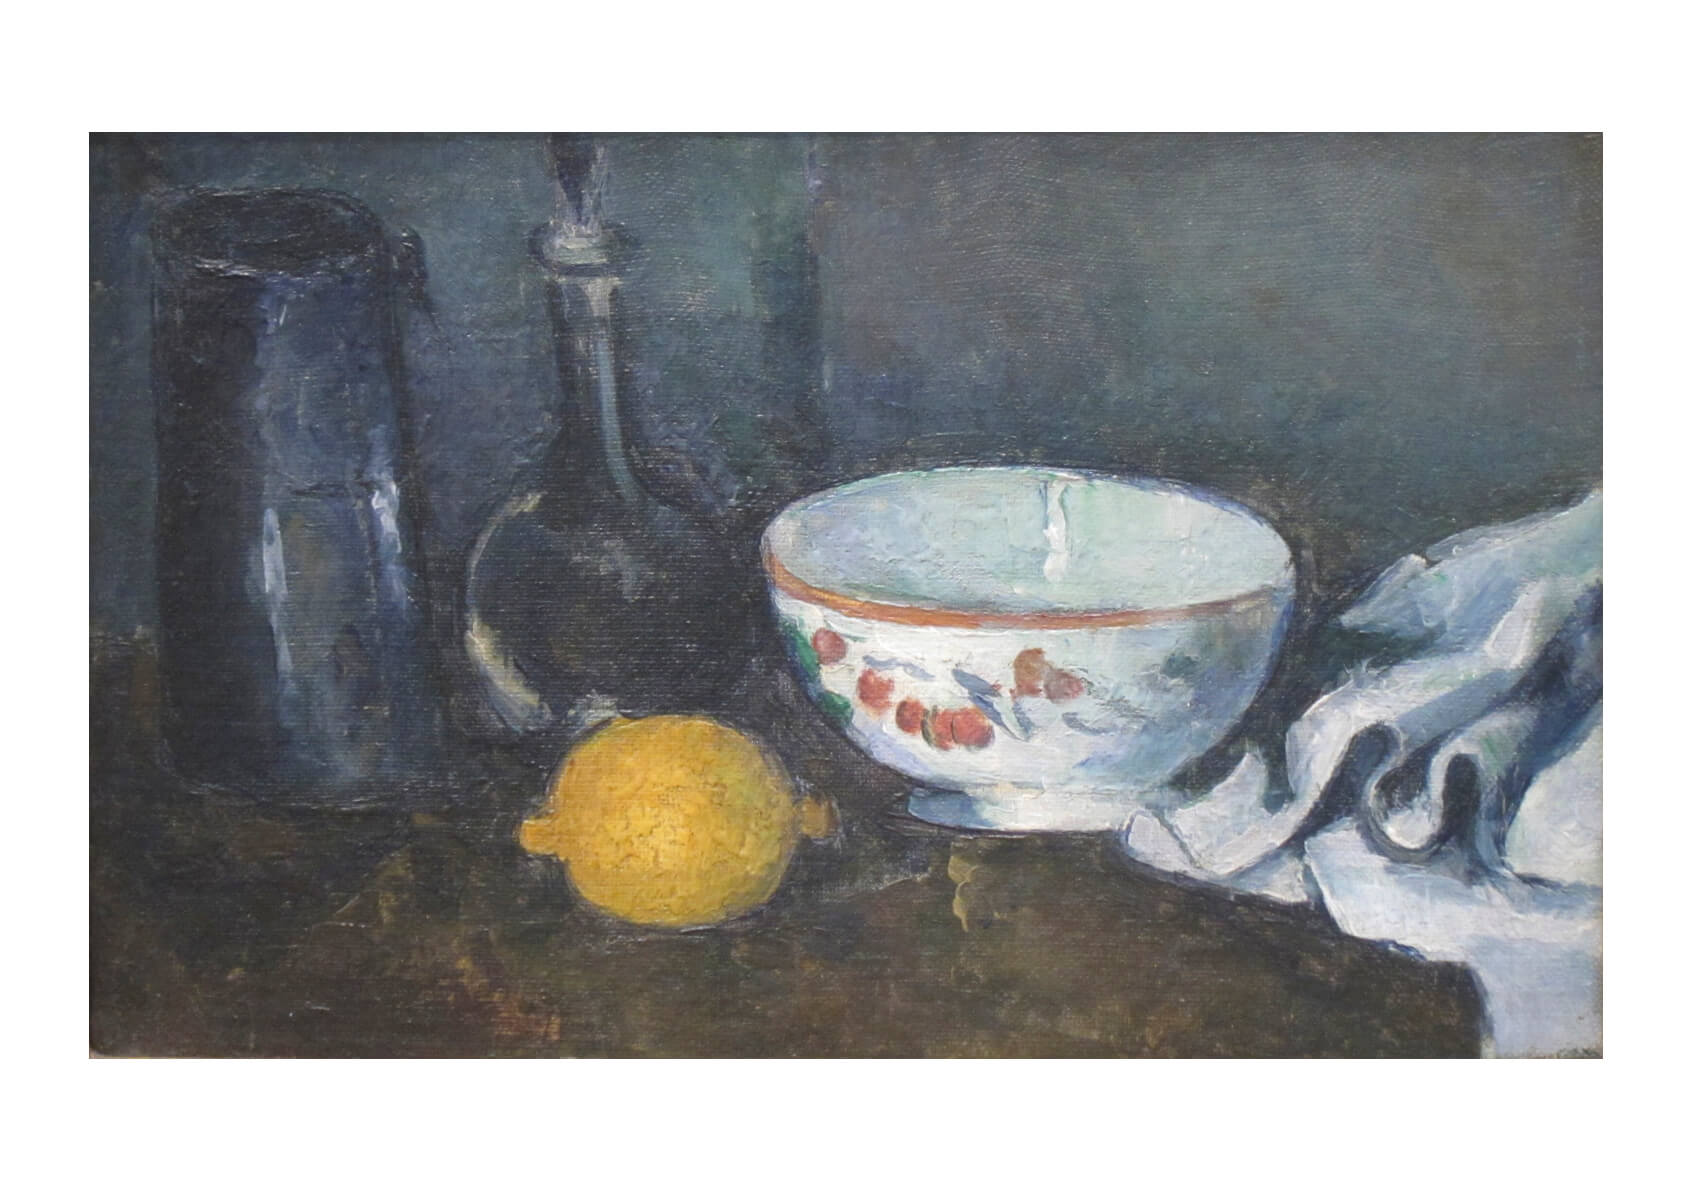 Paul Cezanne - Still-life in Blue with Lemon